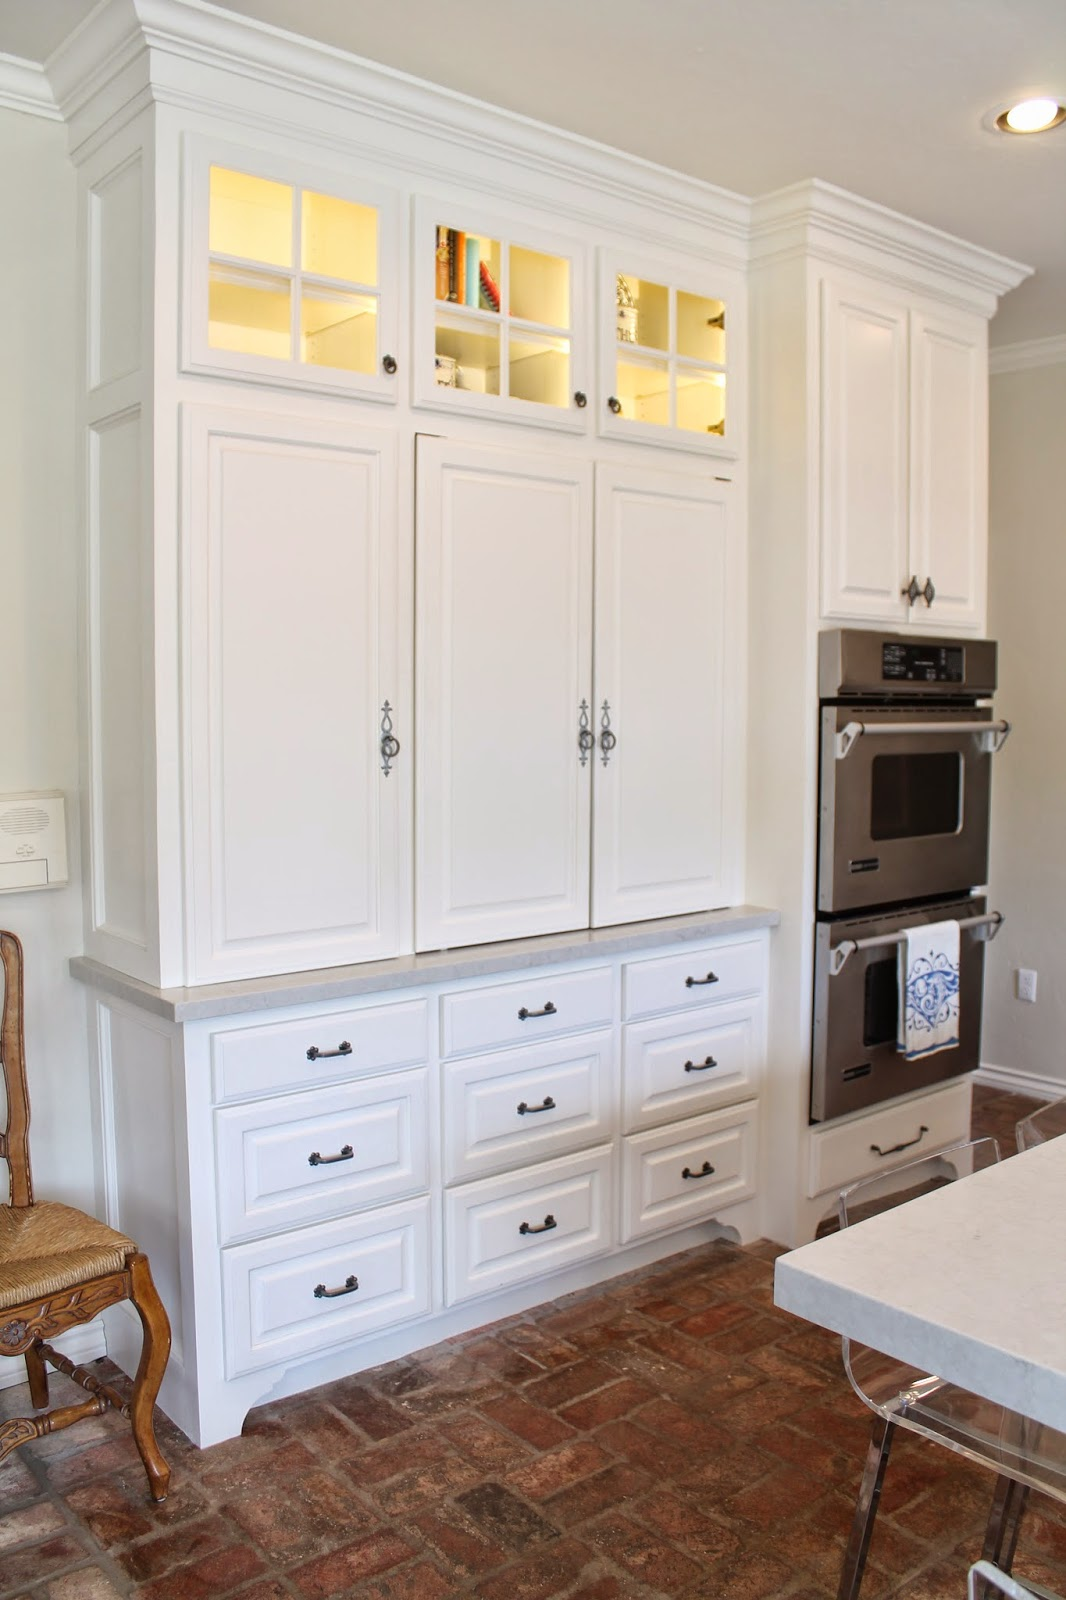 Eleven Gables Hidden Appliance Cabinet And Desk Command Center In The Kitchen